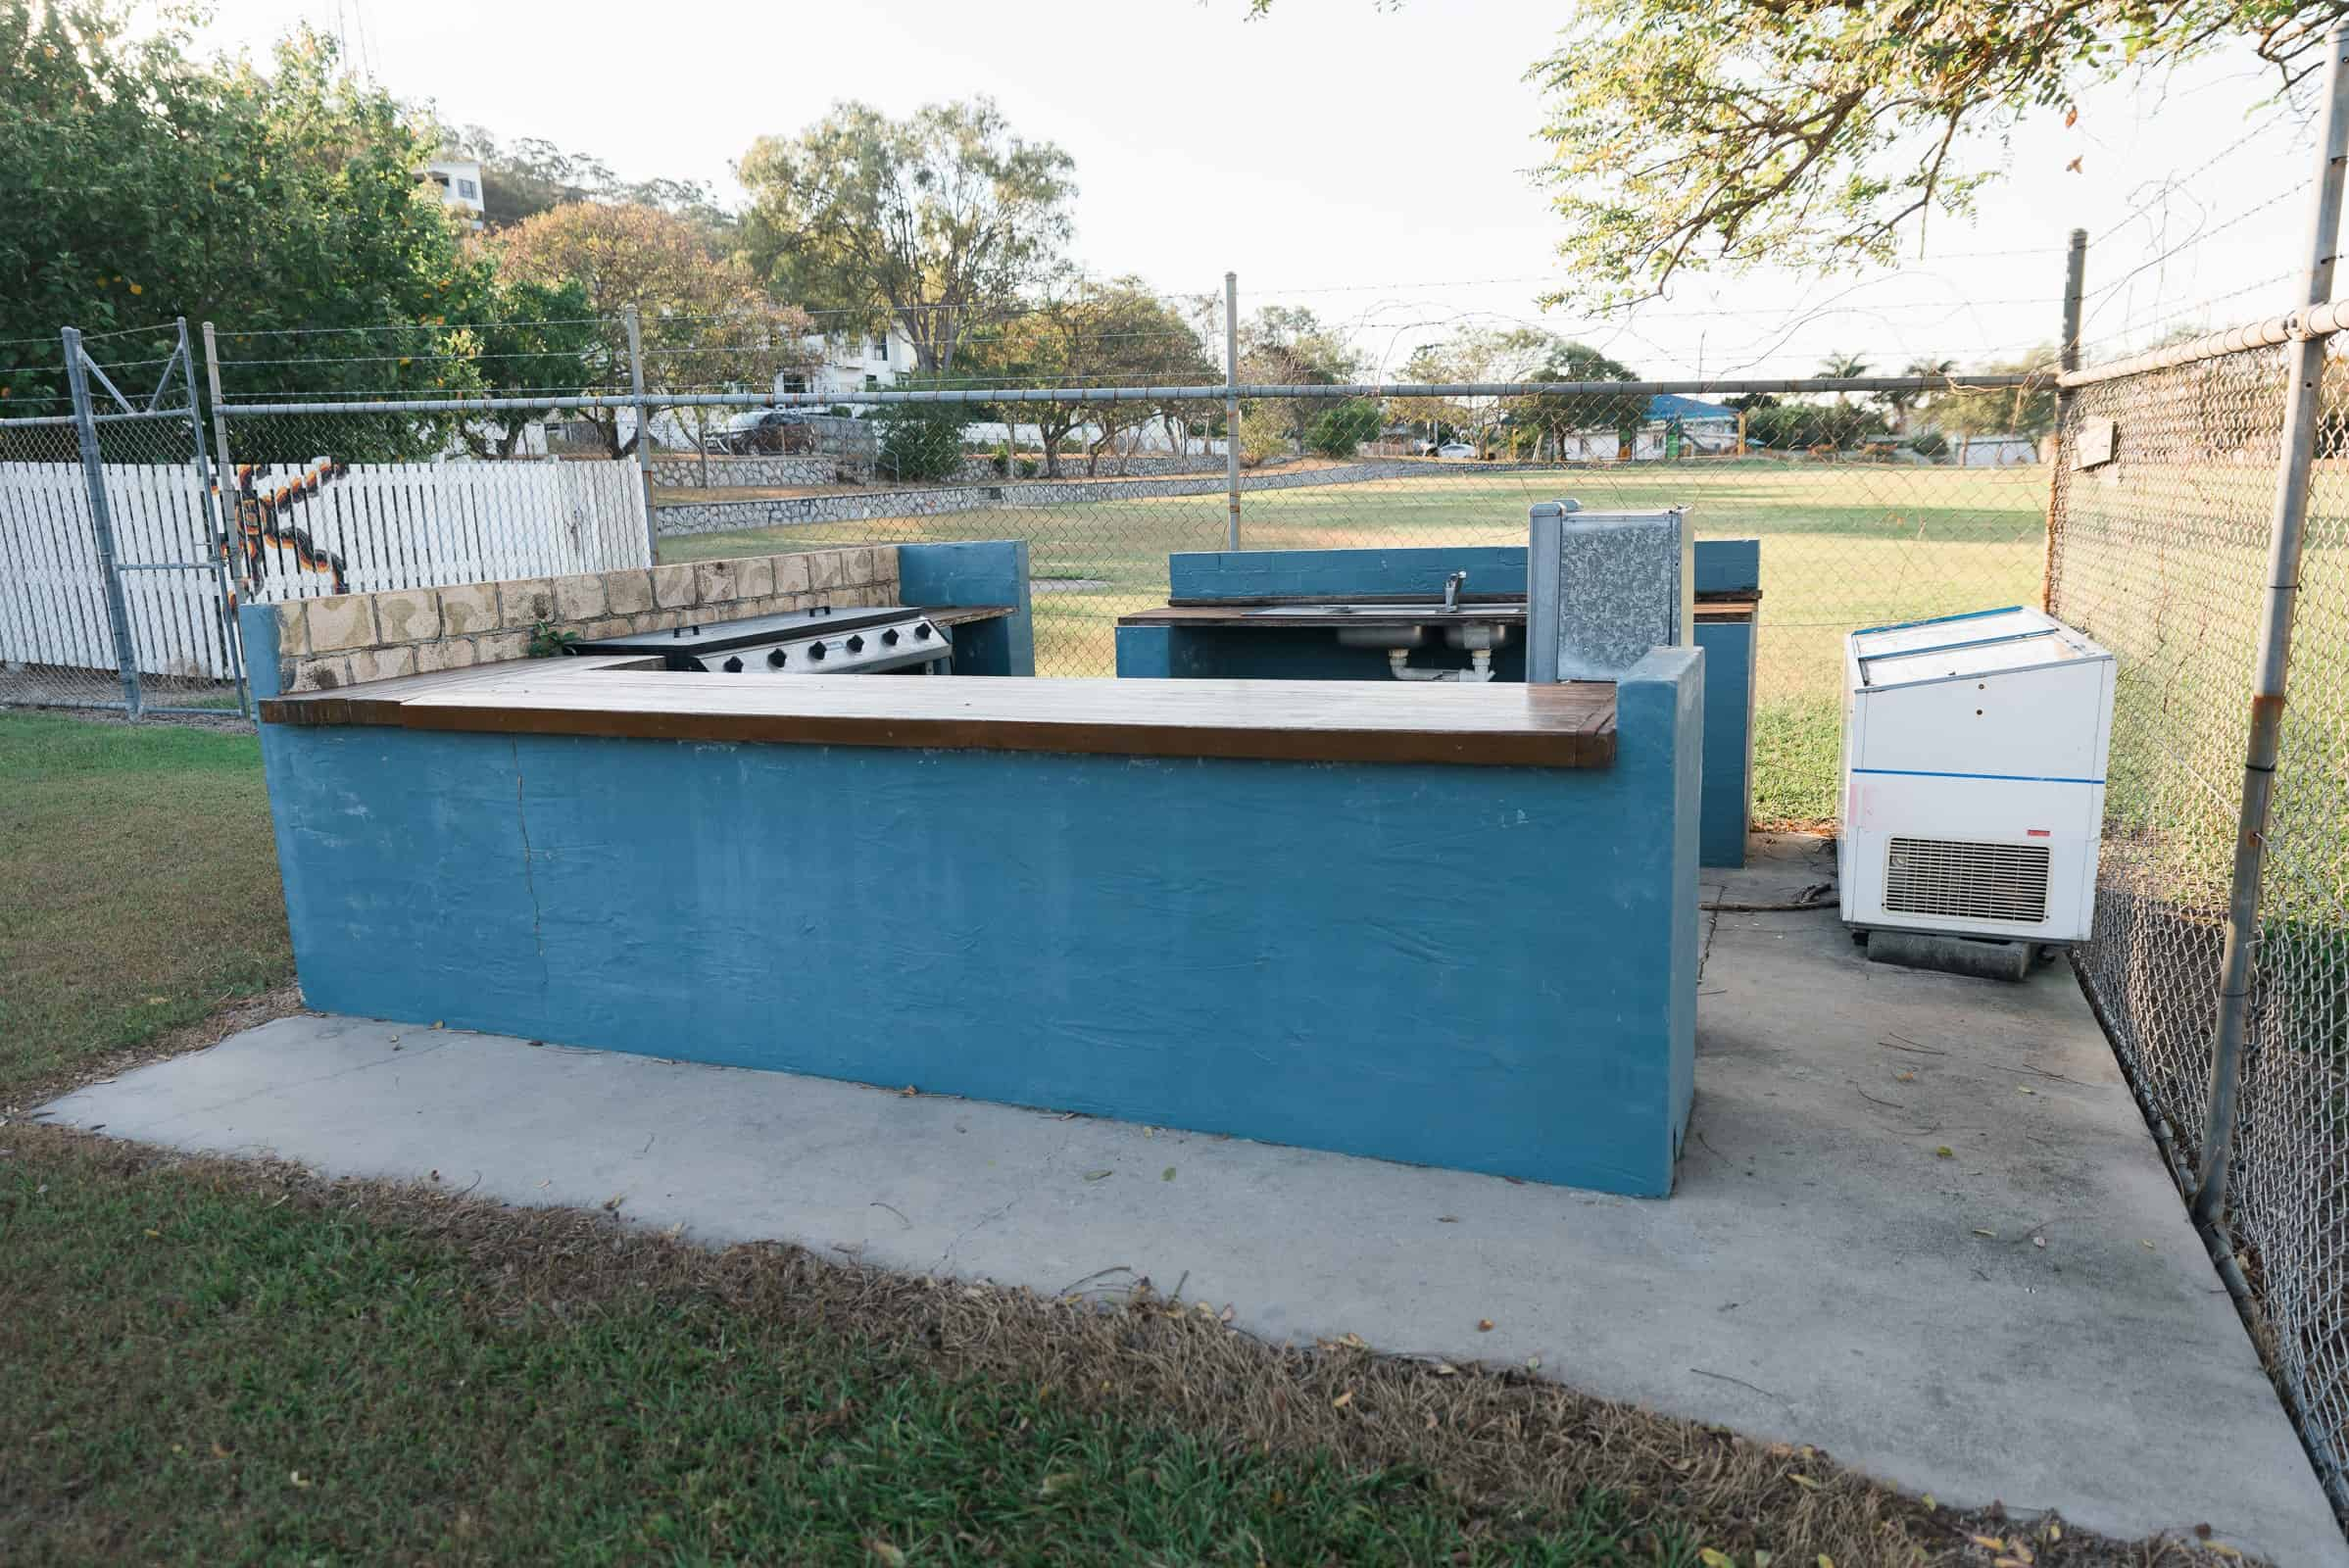 BBQ facilities at the Gladstone South Swimming Club